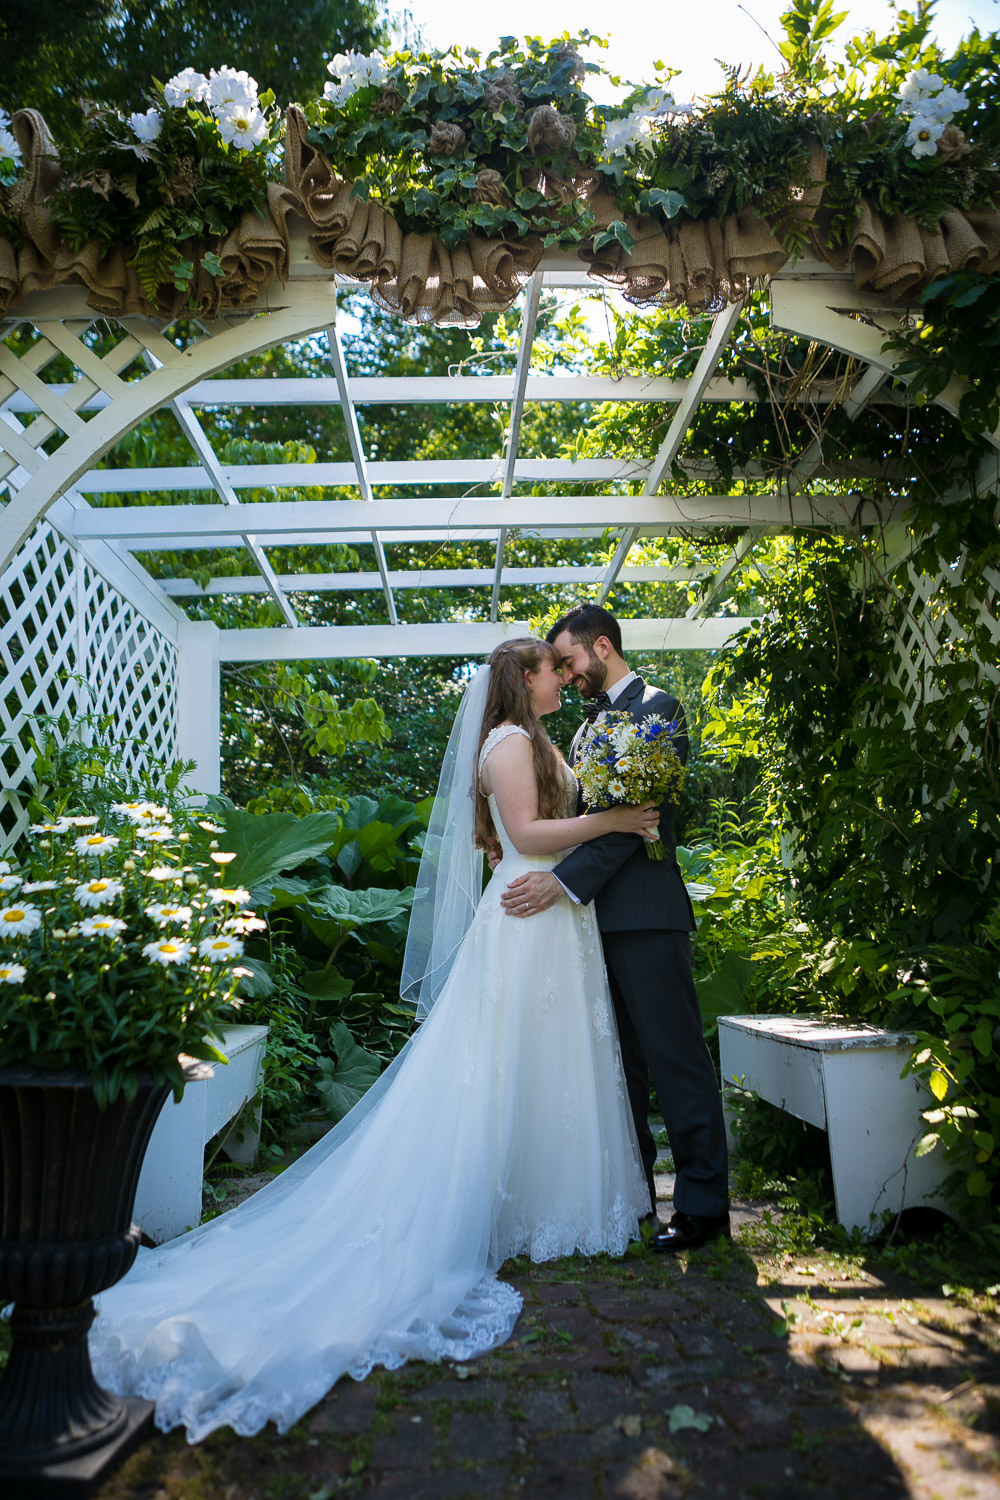 hartmans herb farm weddings, lovely romantic portraits of bride and groom at the gardens